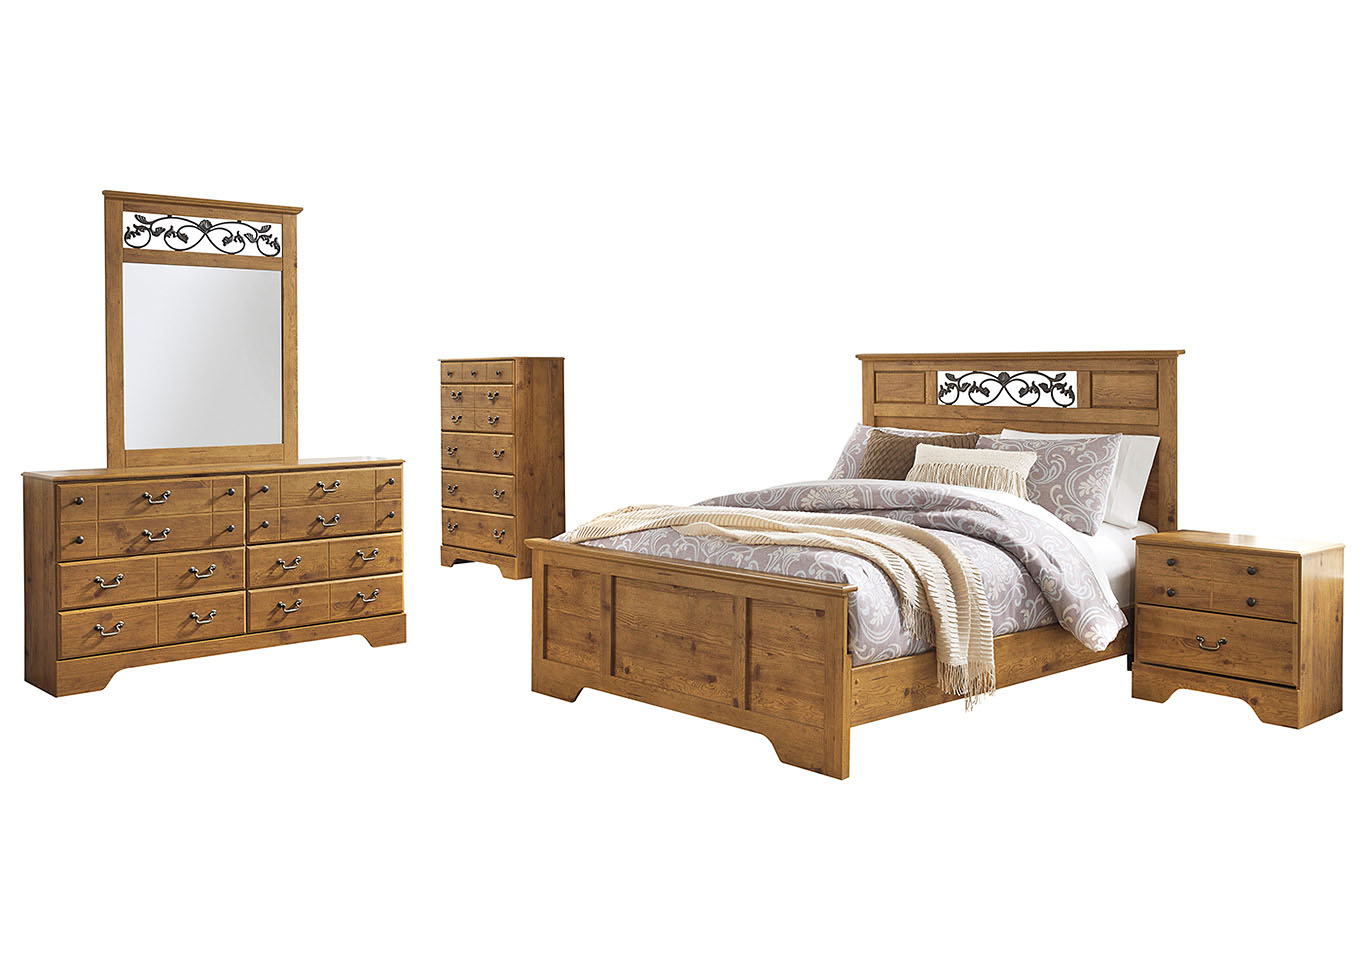 Bittersweet Light Brown Queen Panel Bed w/Dresser & Mirror,Signature Design By Ashley